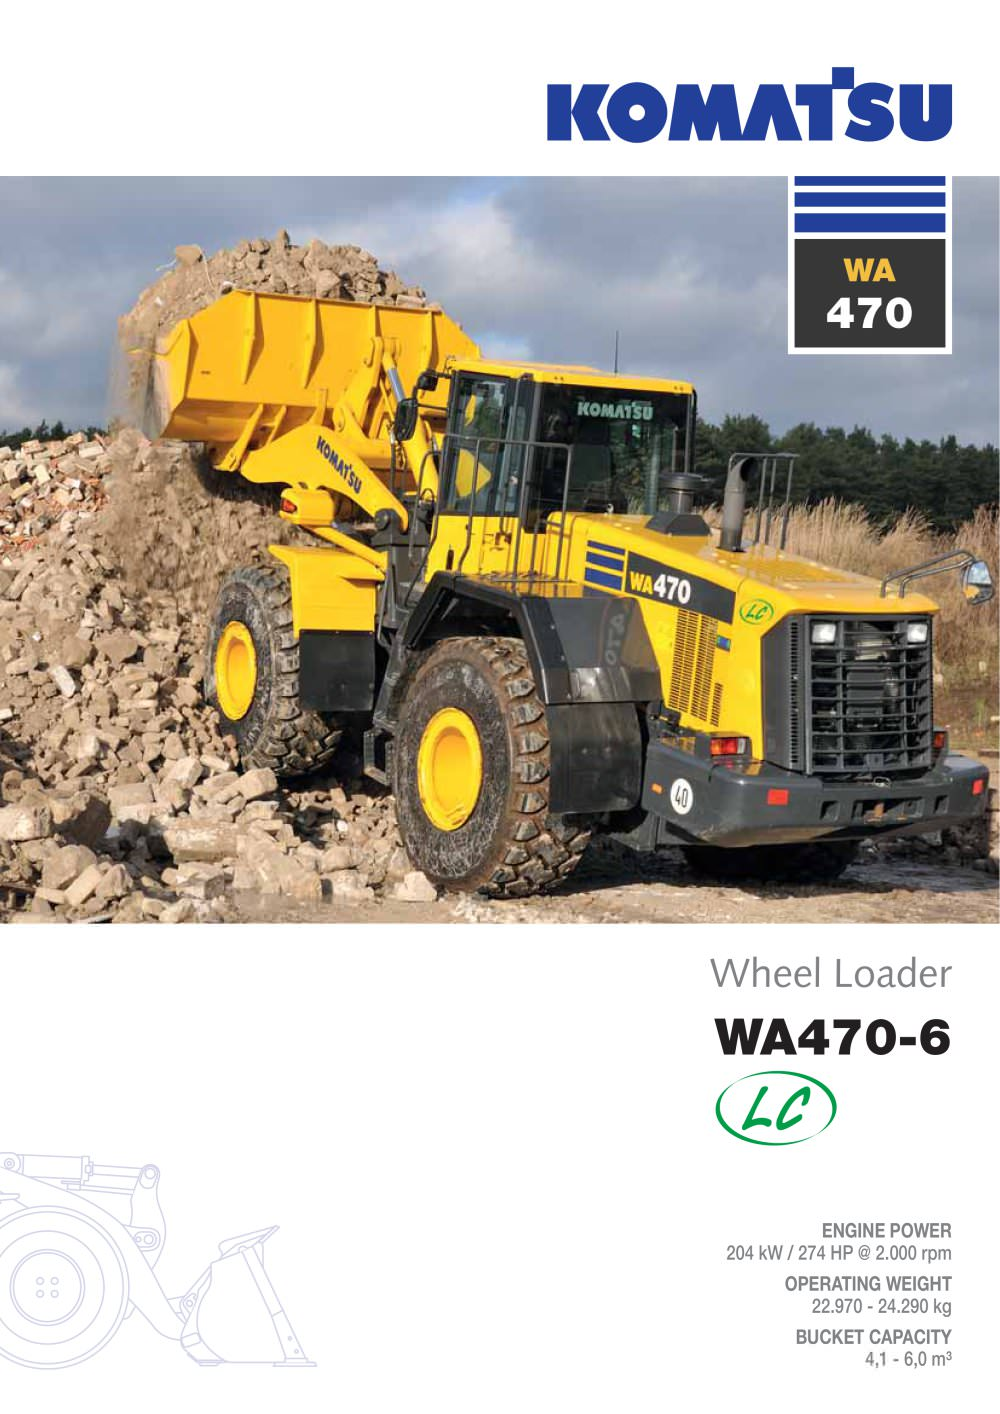 WA470-6 (LC) - 1 / 24 Pages